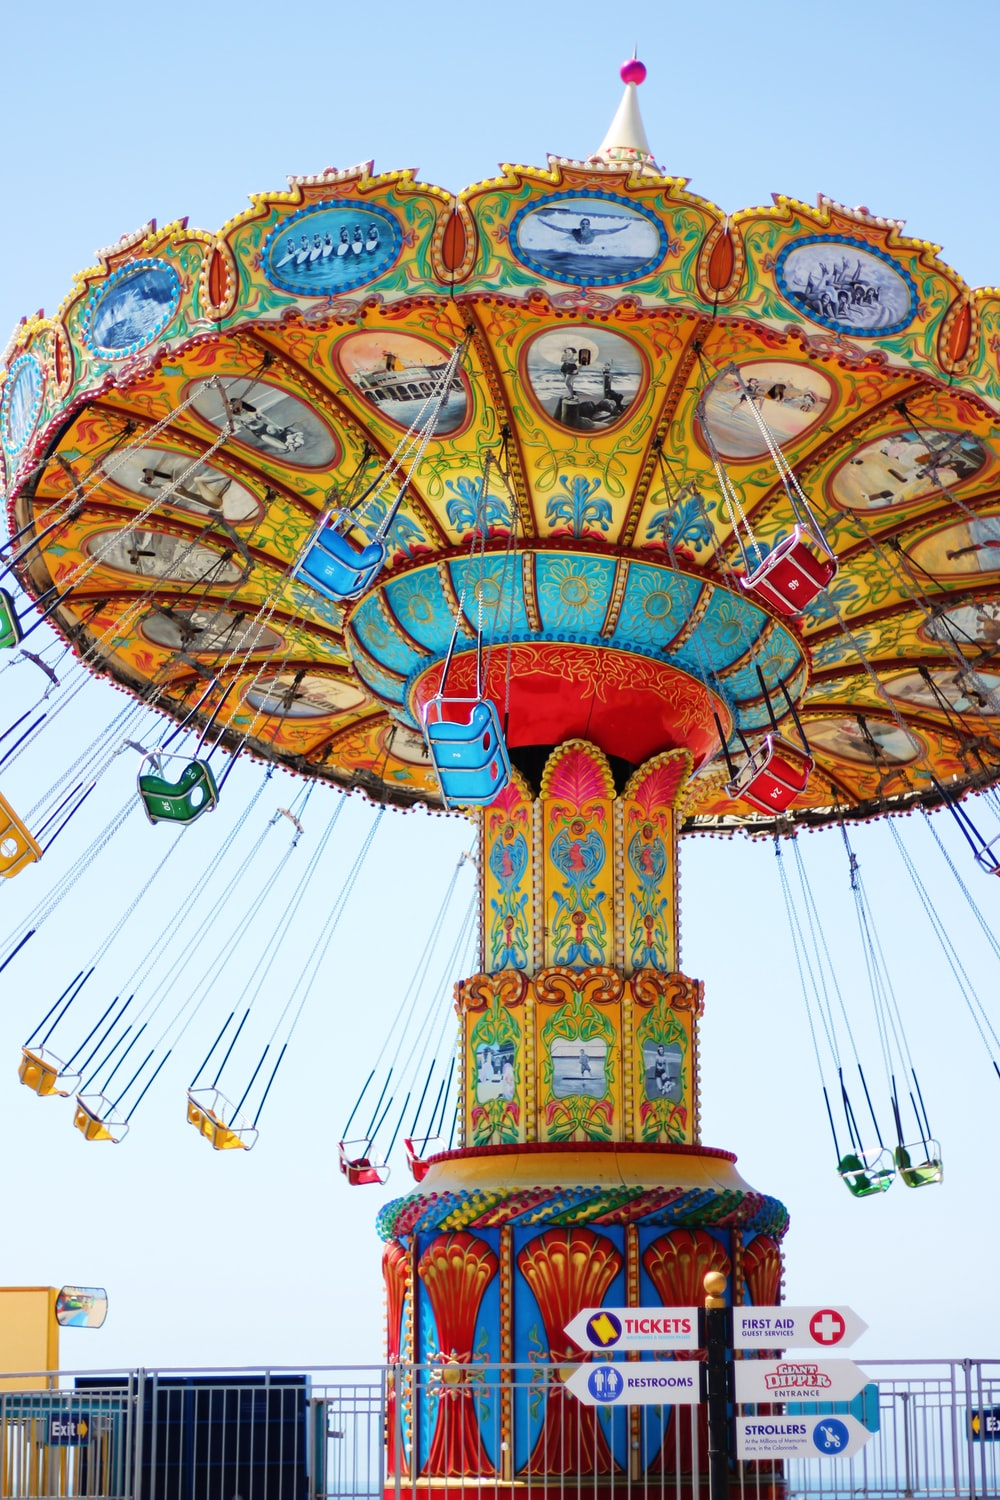 Marry Go Round ride at daytime